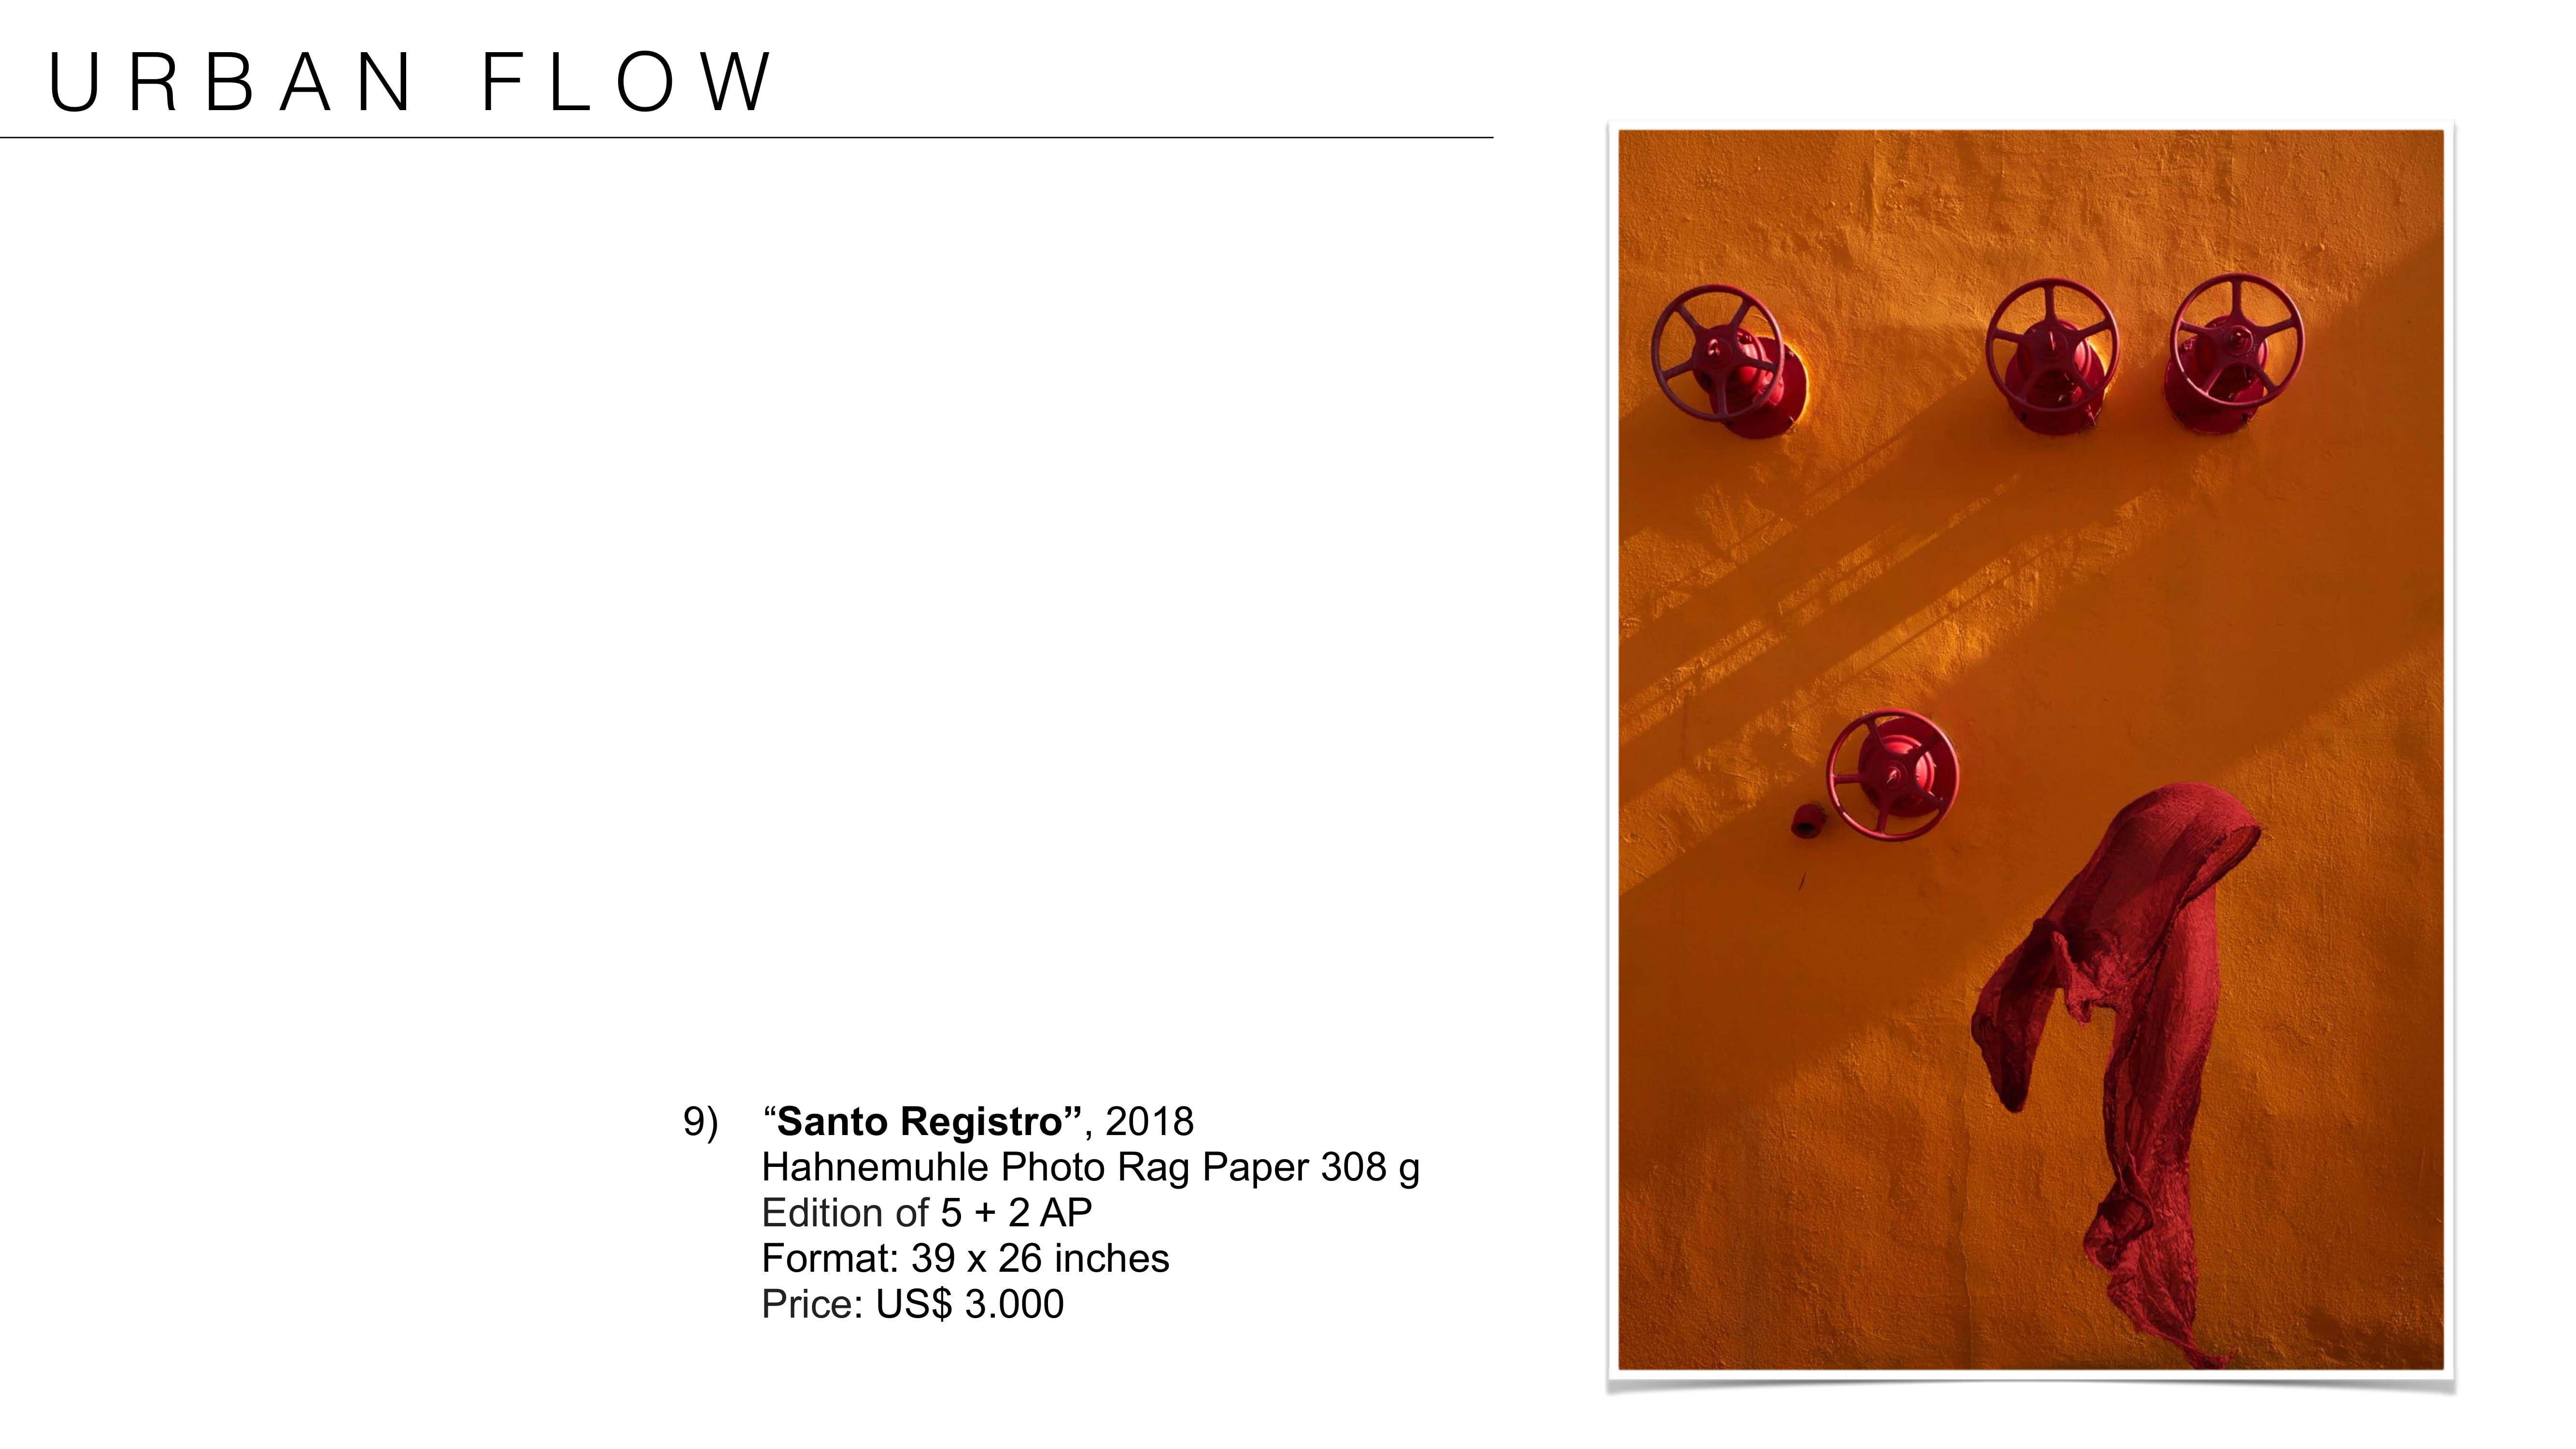 urban-flow-catalog-11